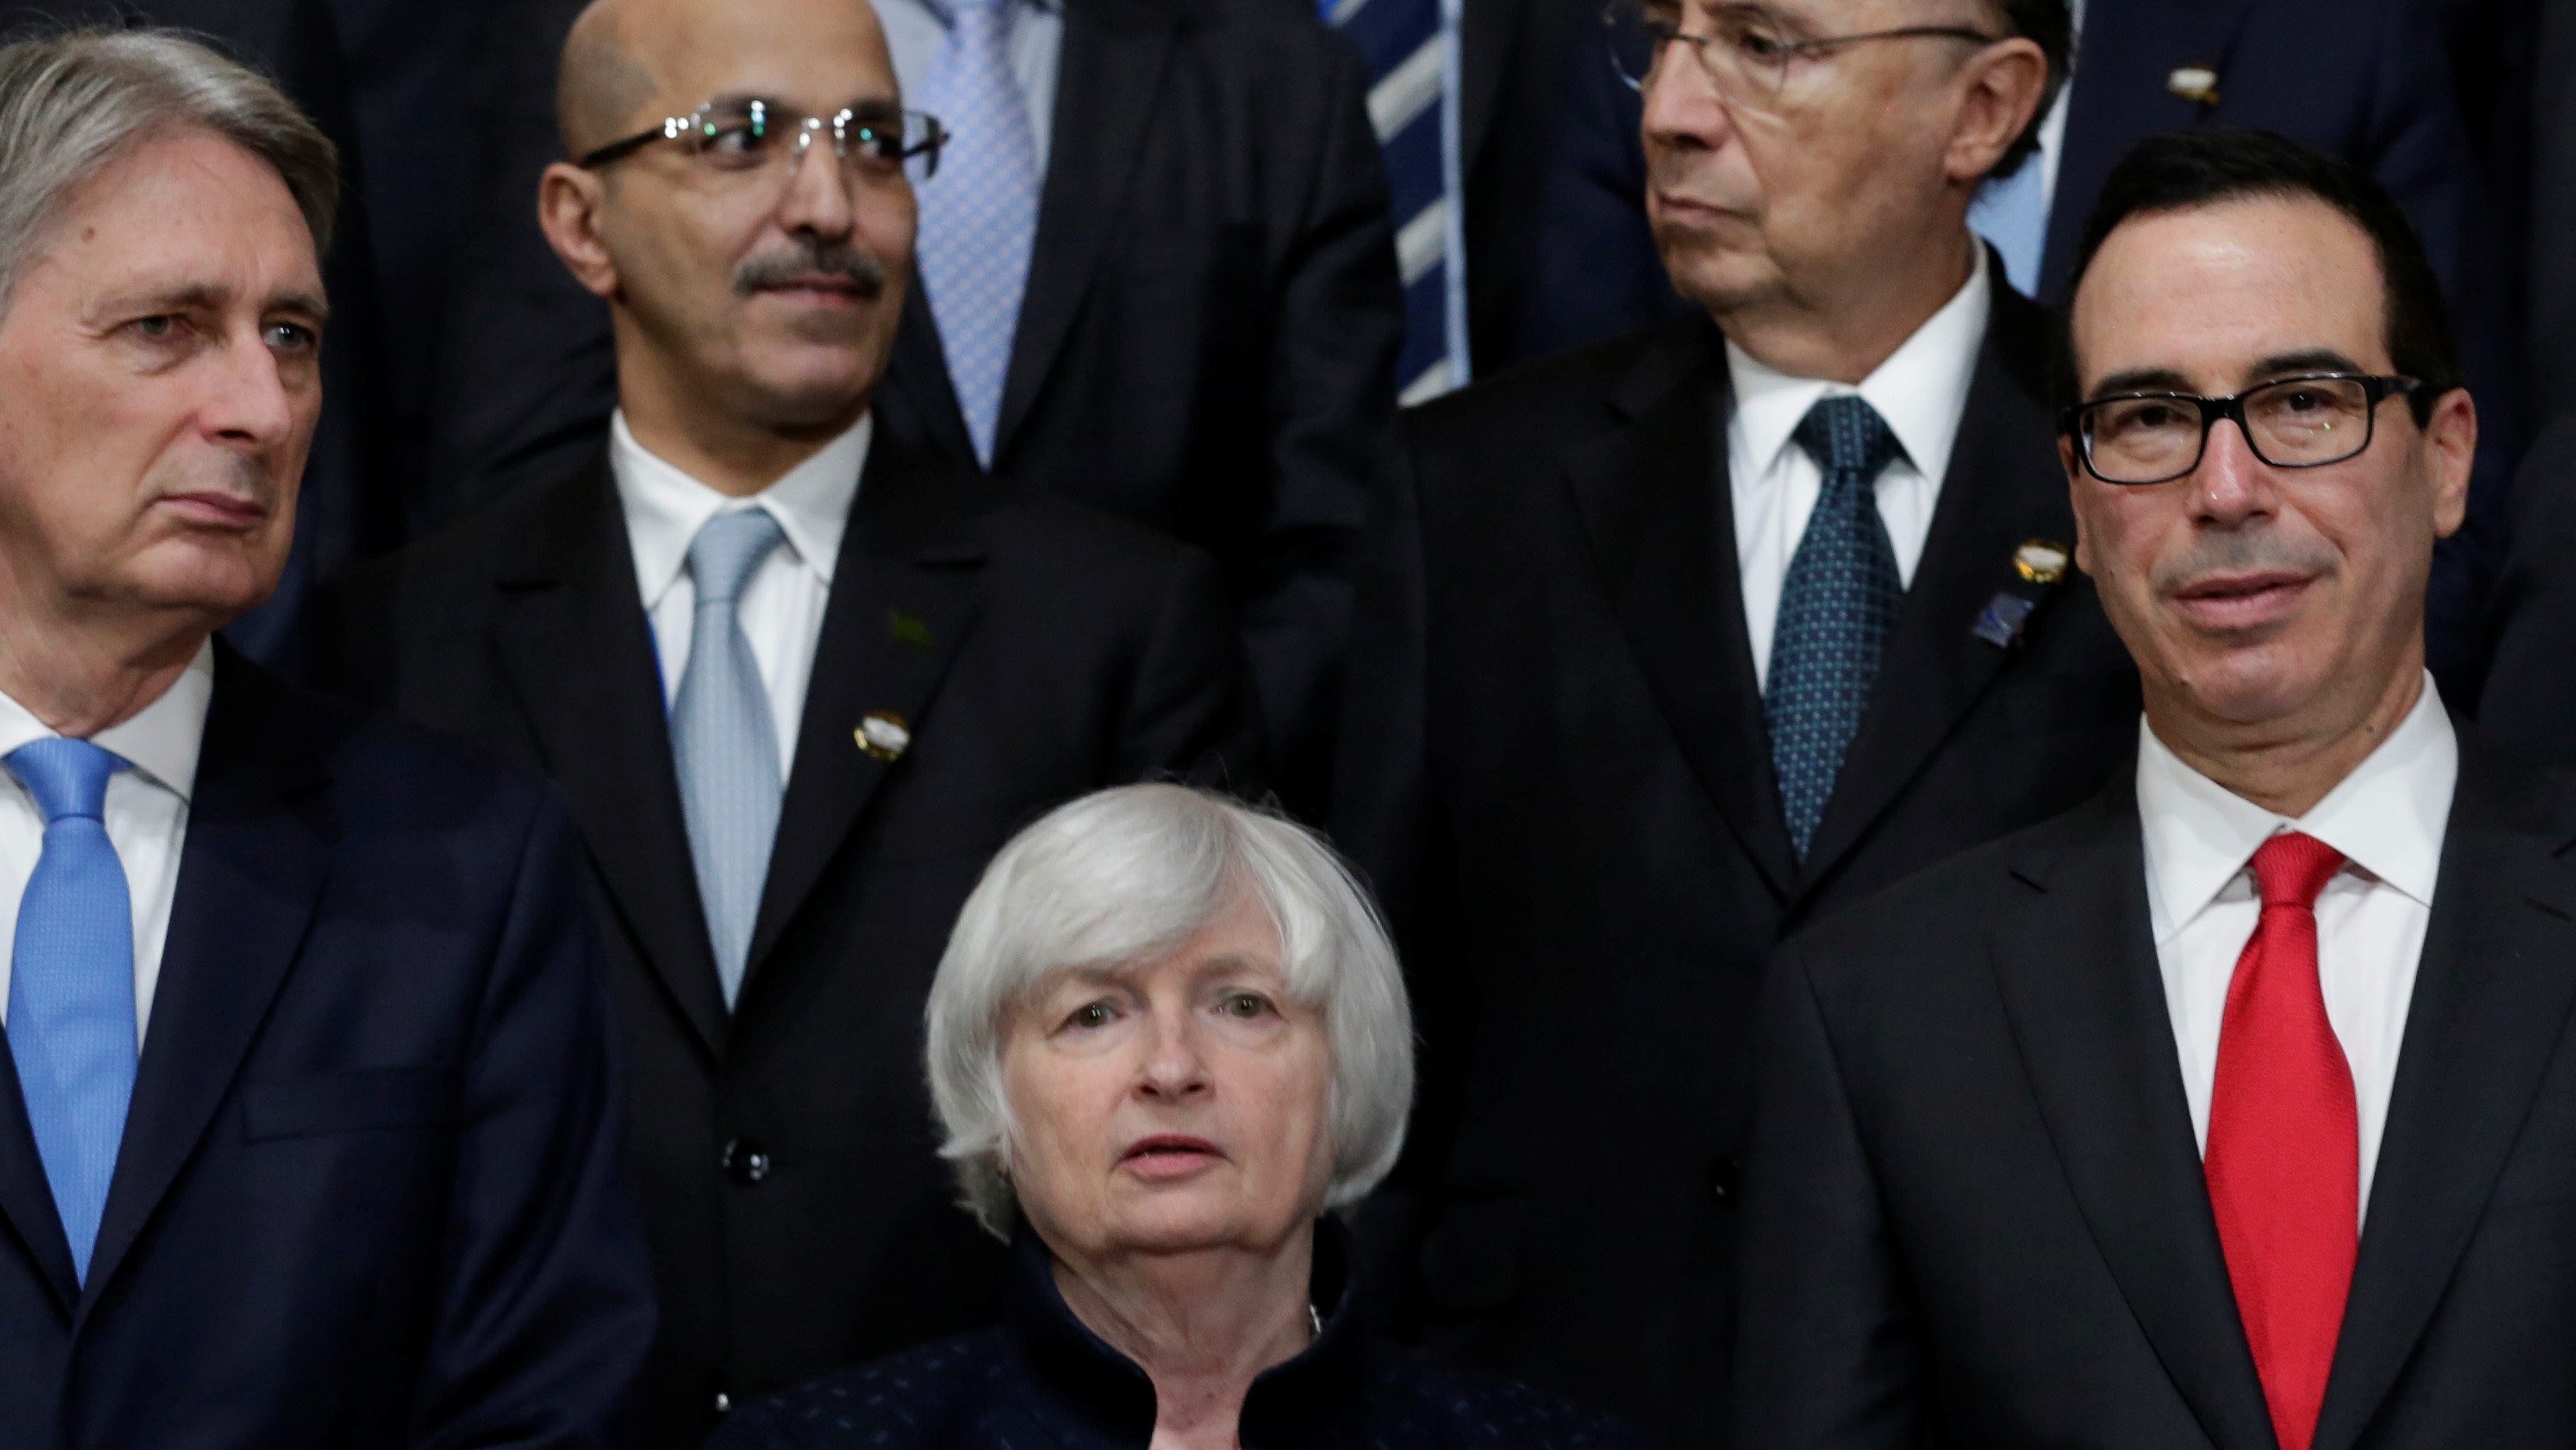 Britain's Chancellor of the Exchequer, Philip Hammond, Federal Reserve Chair Janet Yellen and U.S. Treasury Secretary Steve Mnuchin pose